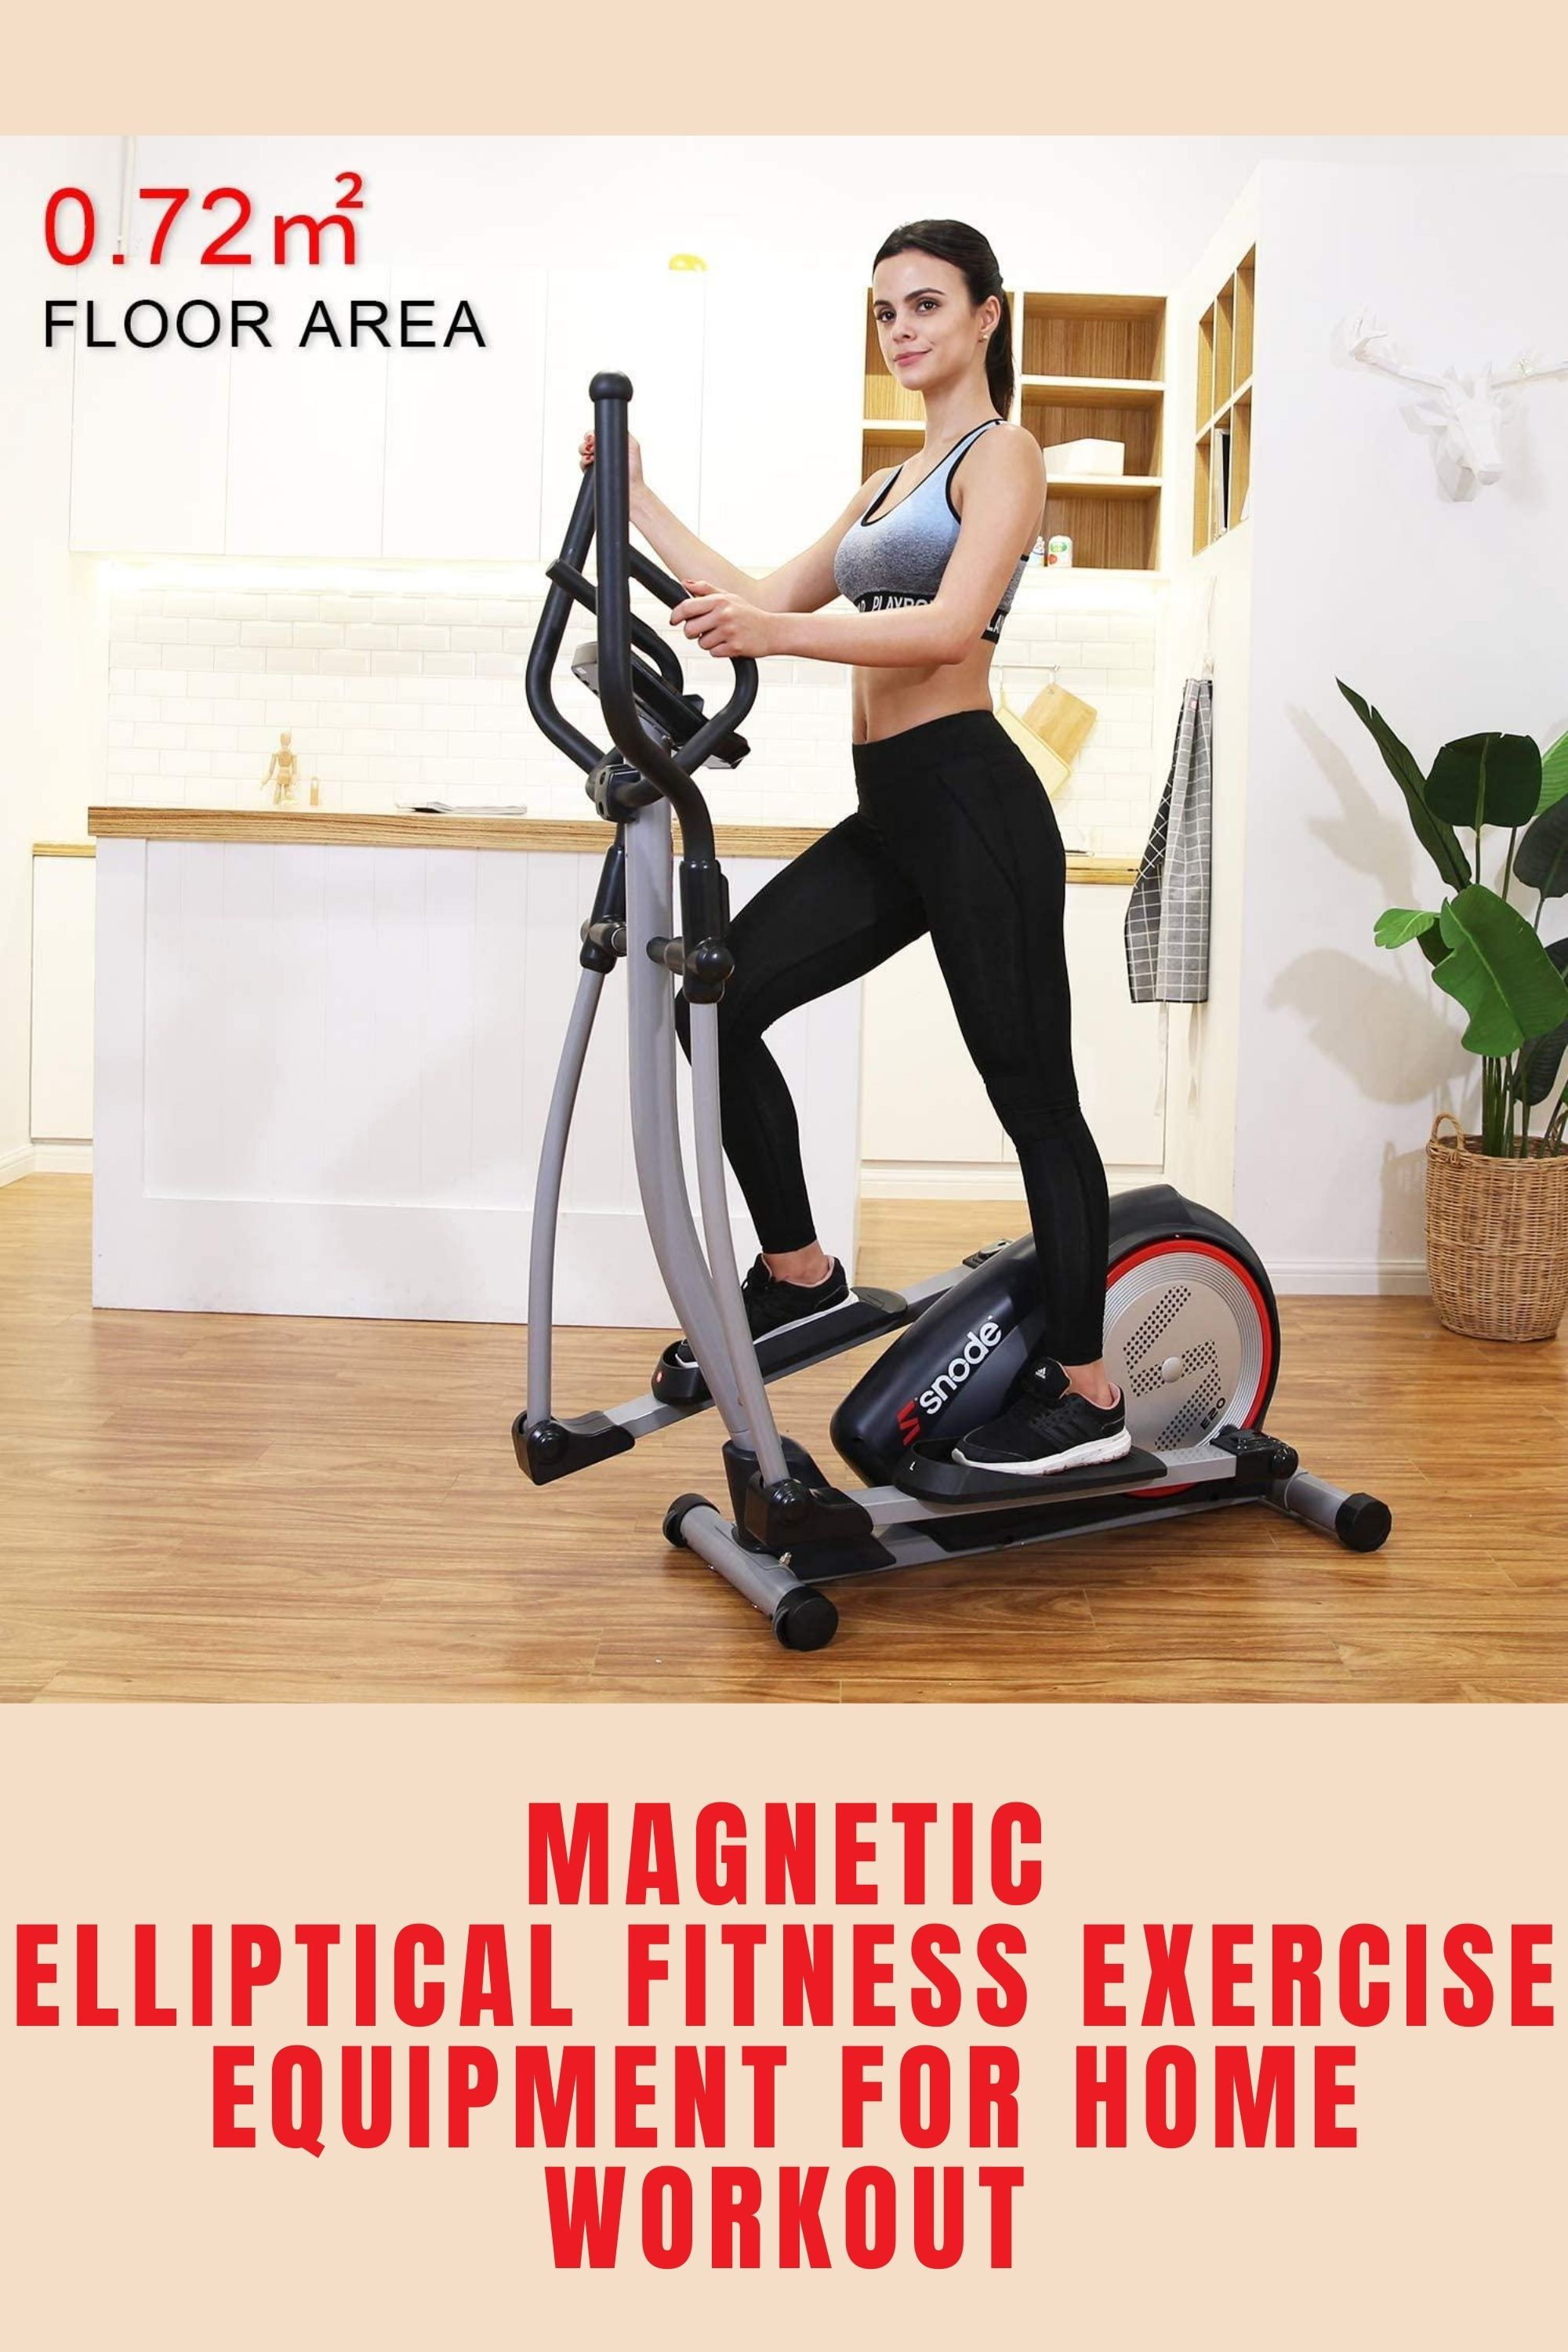 Magnetic Elliptical Fitness Exercise Equipment for Home Workout